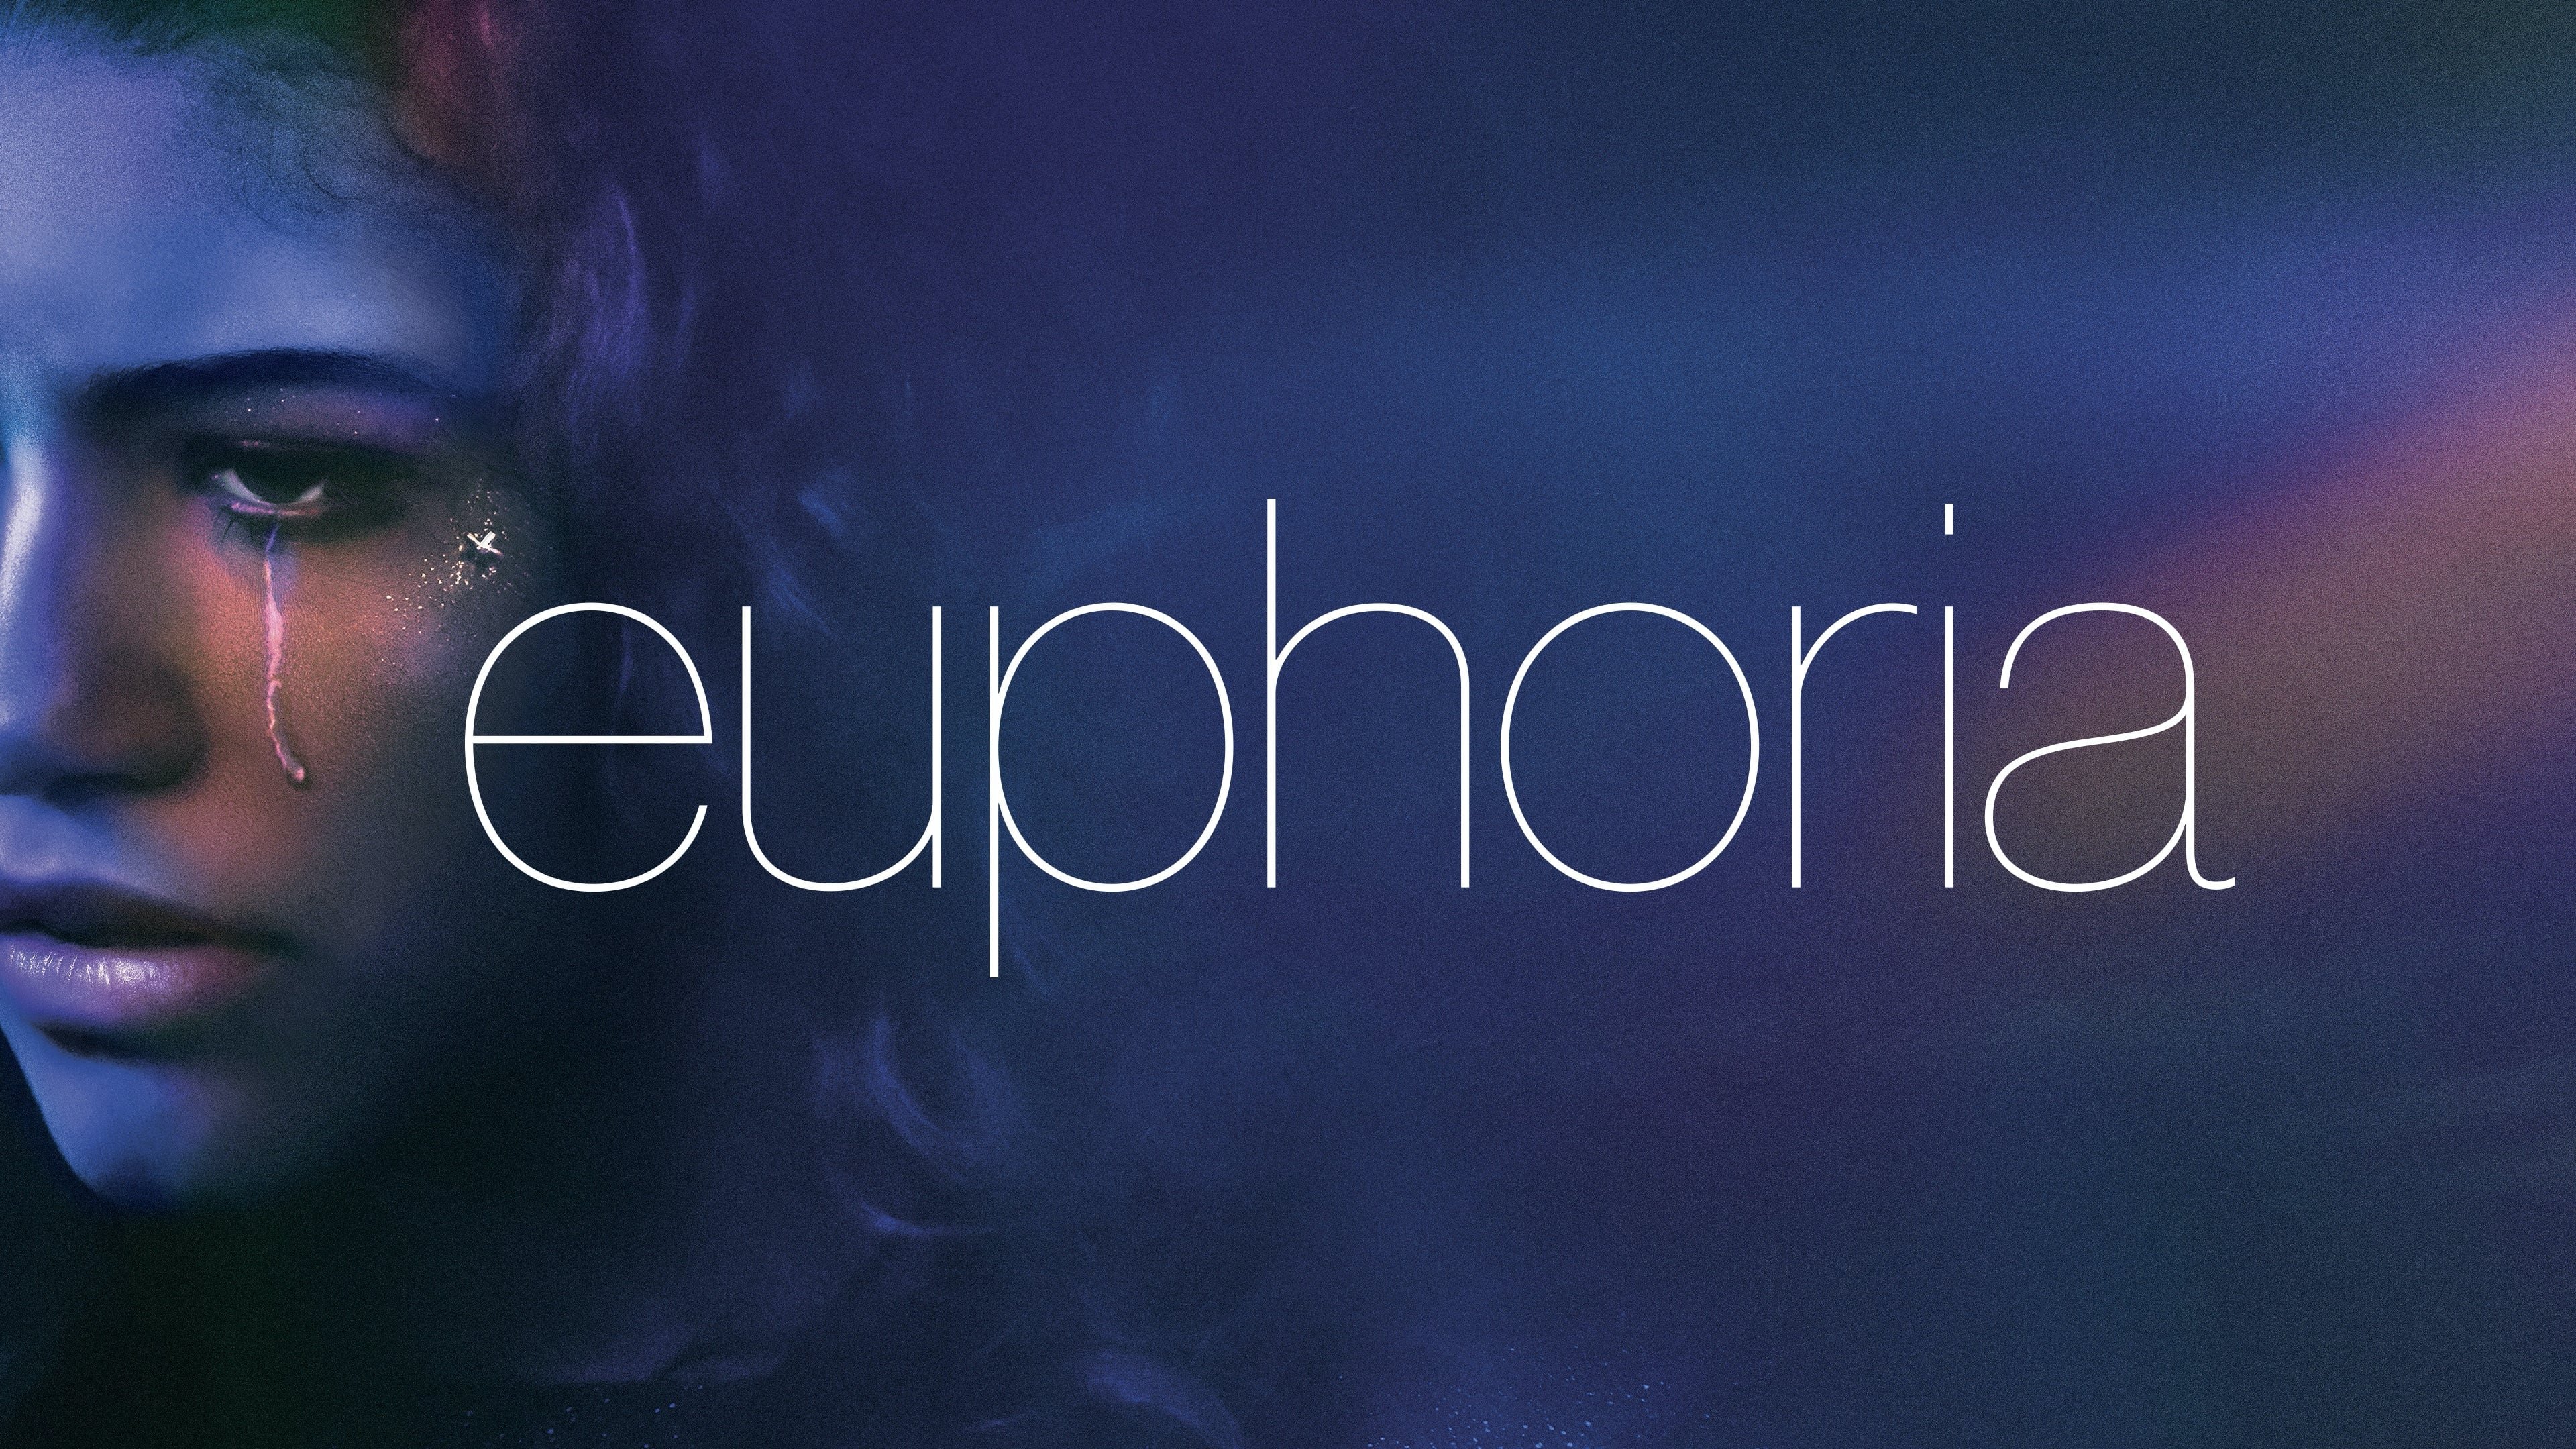 Euphoria fans receive a little bonus